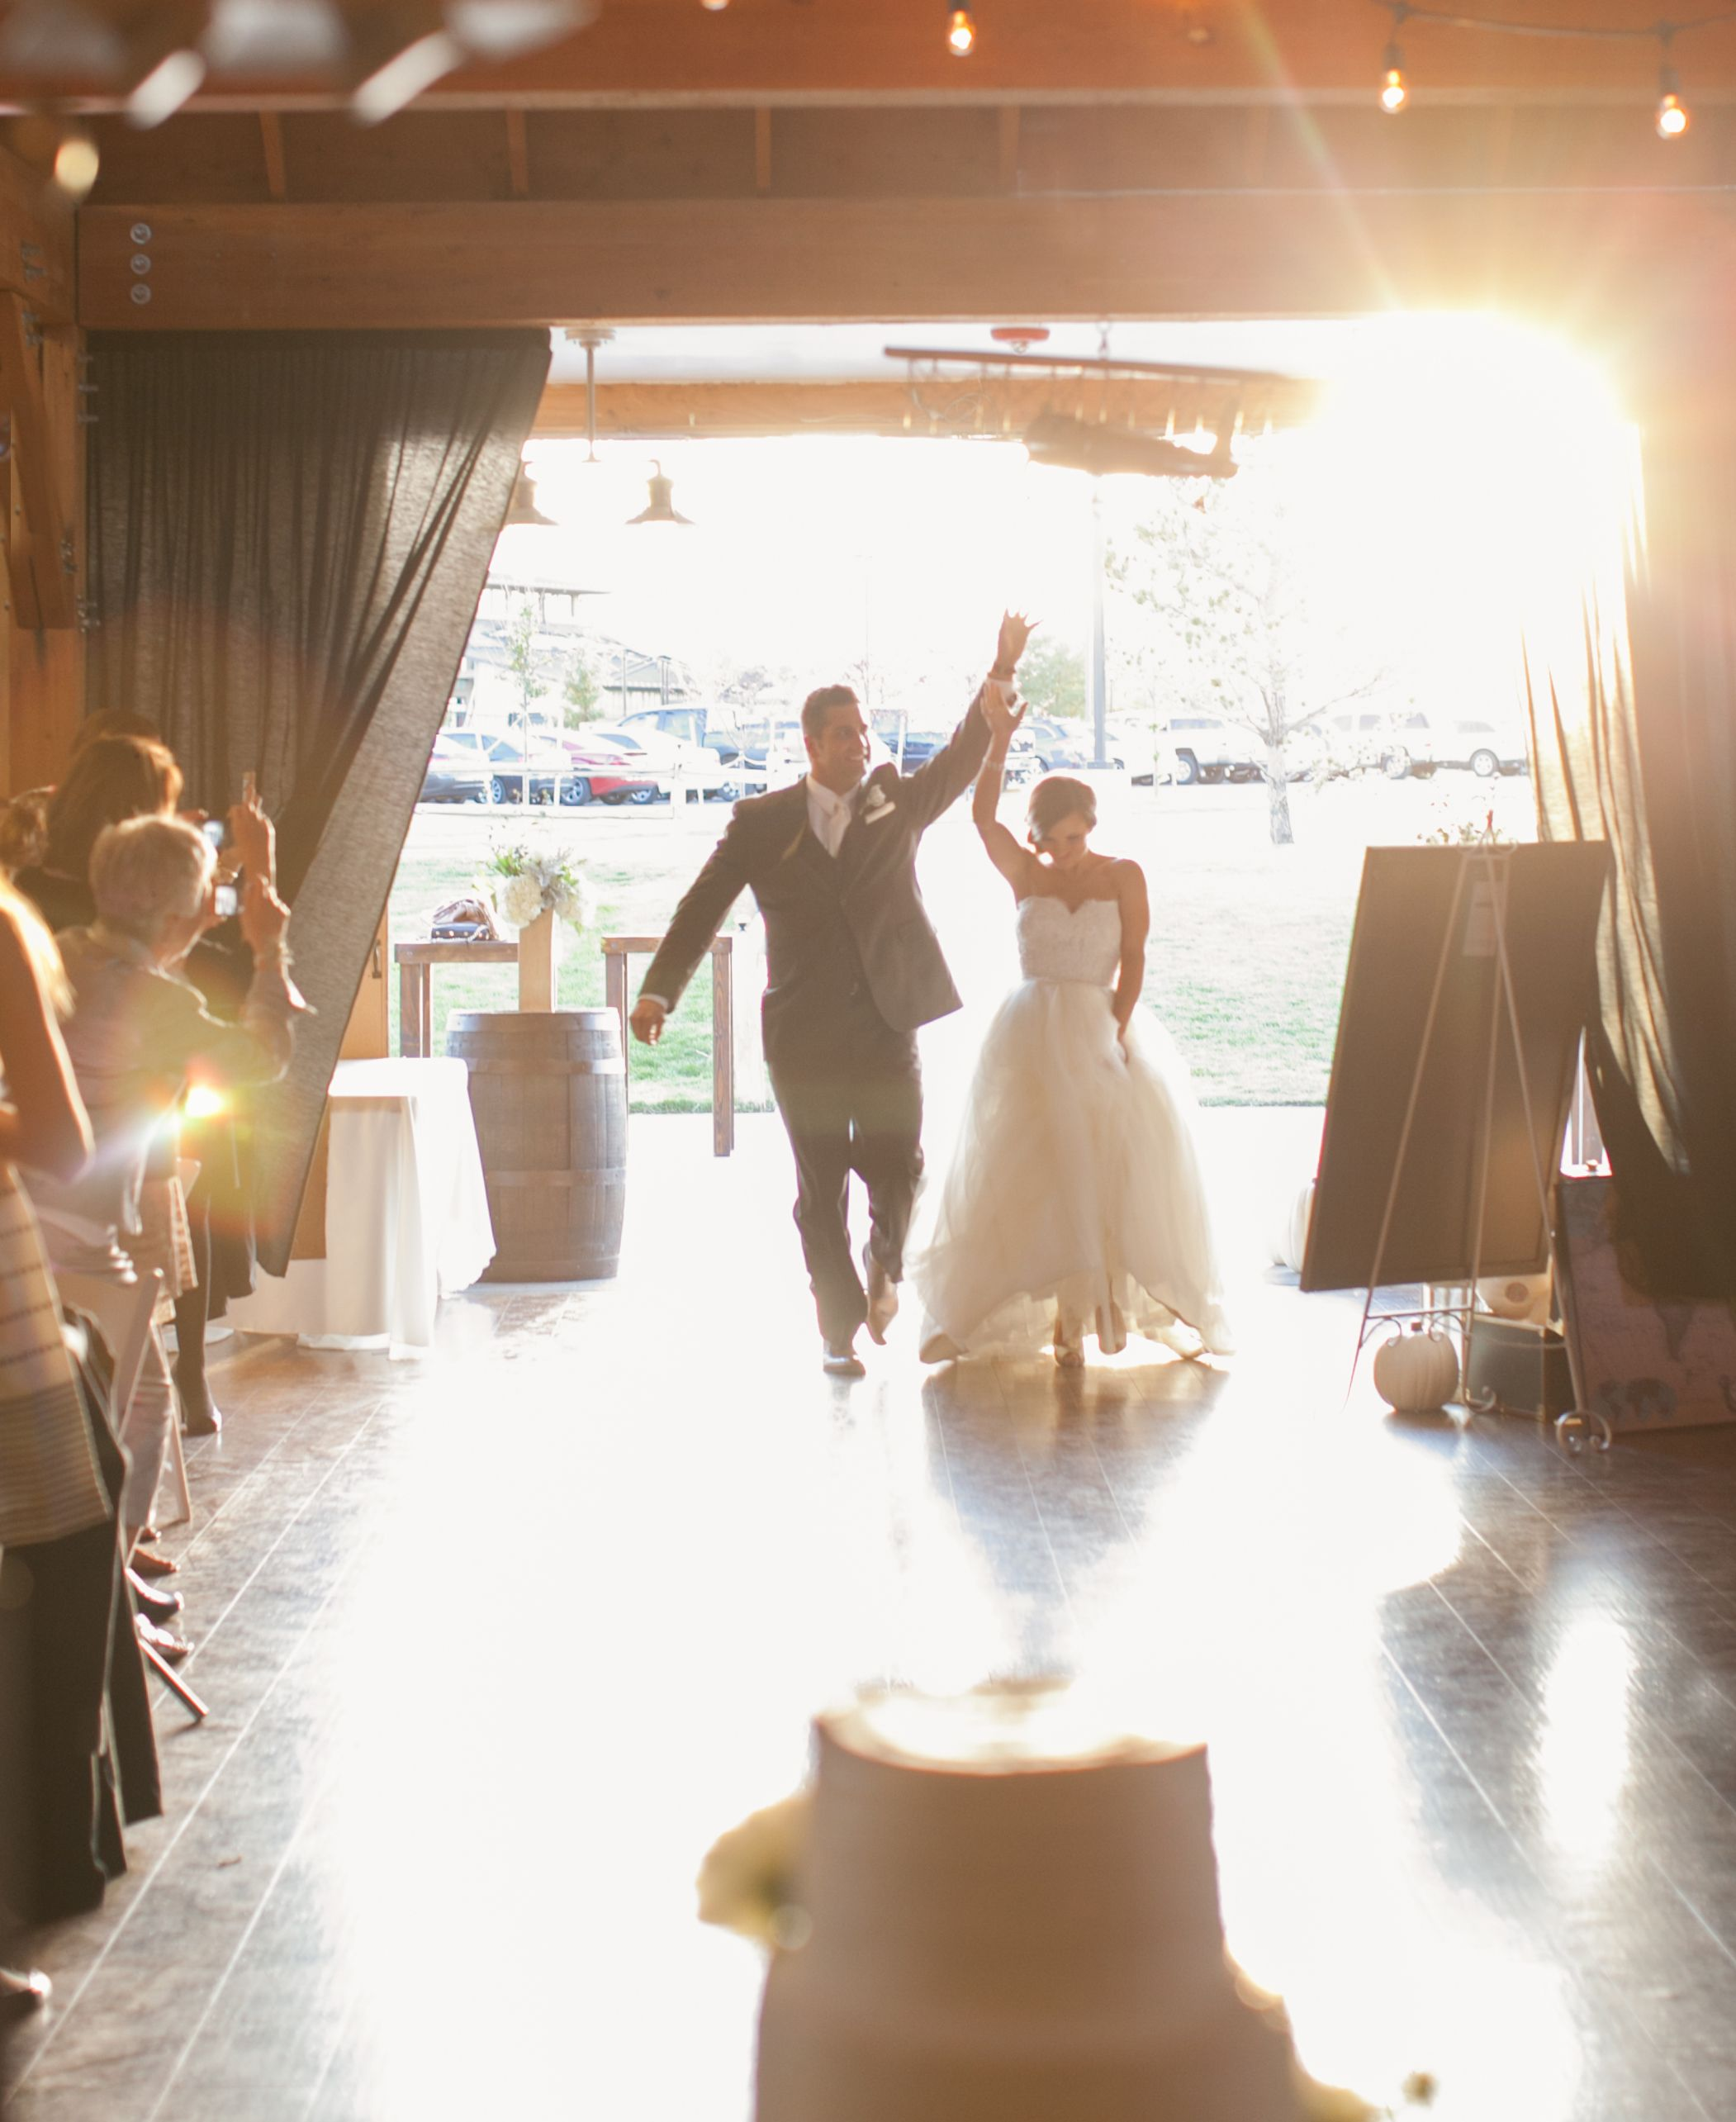 Wedding Entrance Songs For The Newlyweds That'll Wow Any